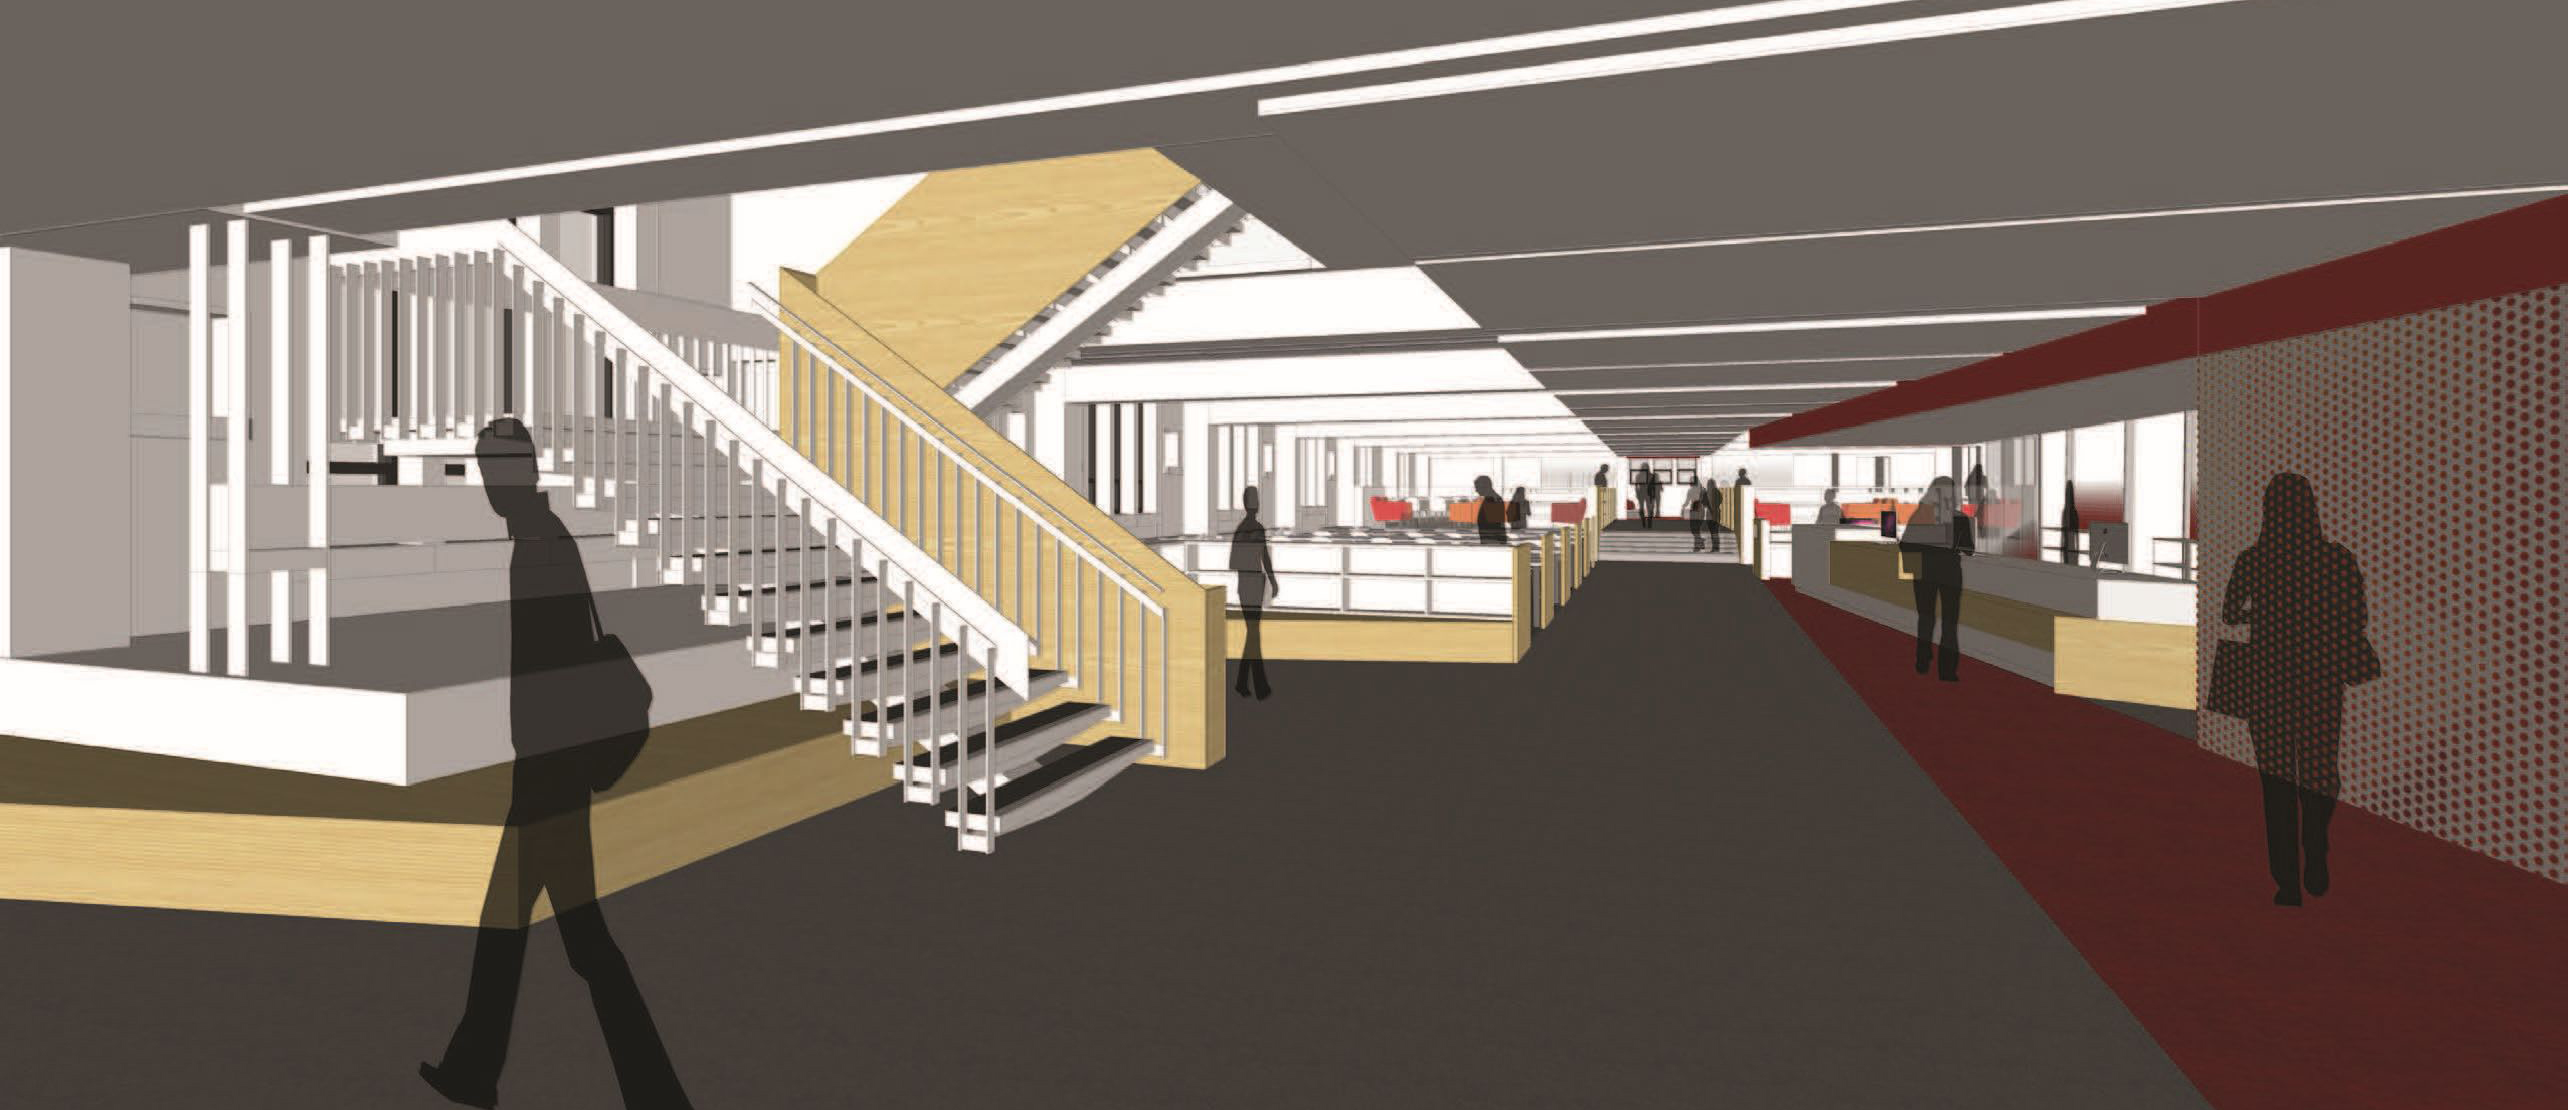 Library renovations visual_Page_10 cropped